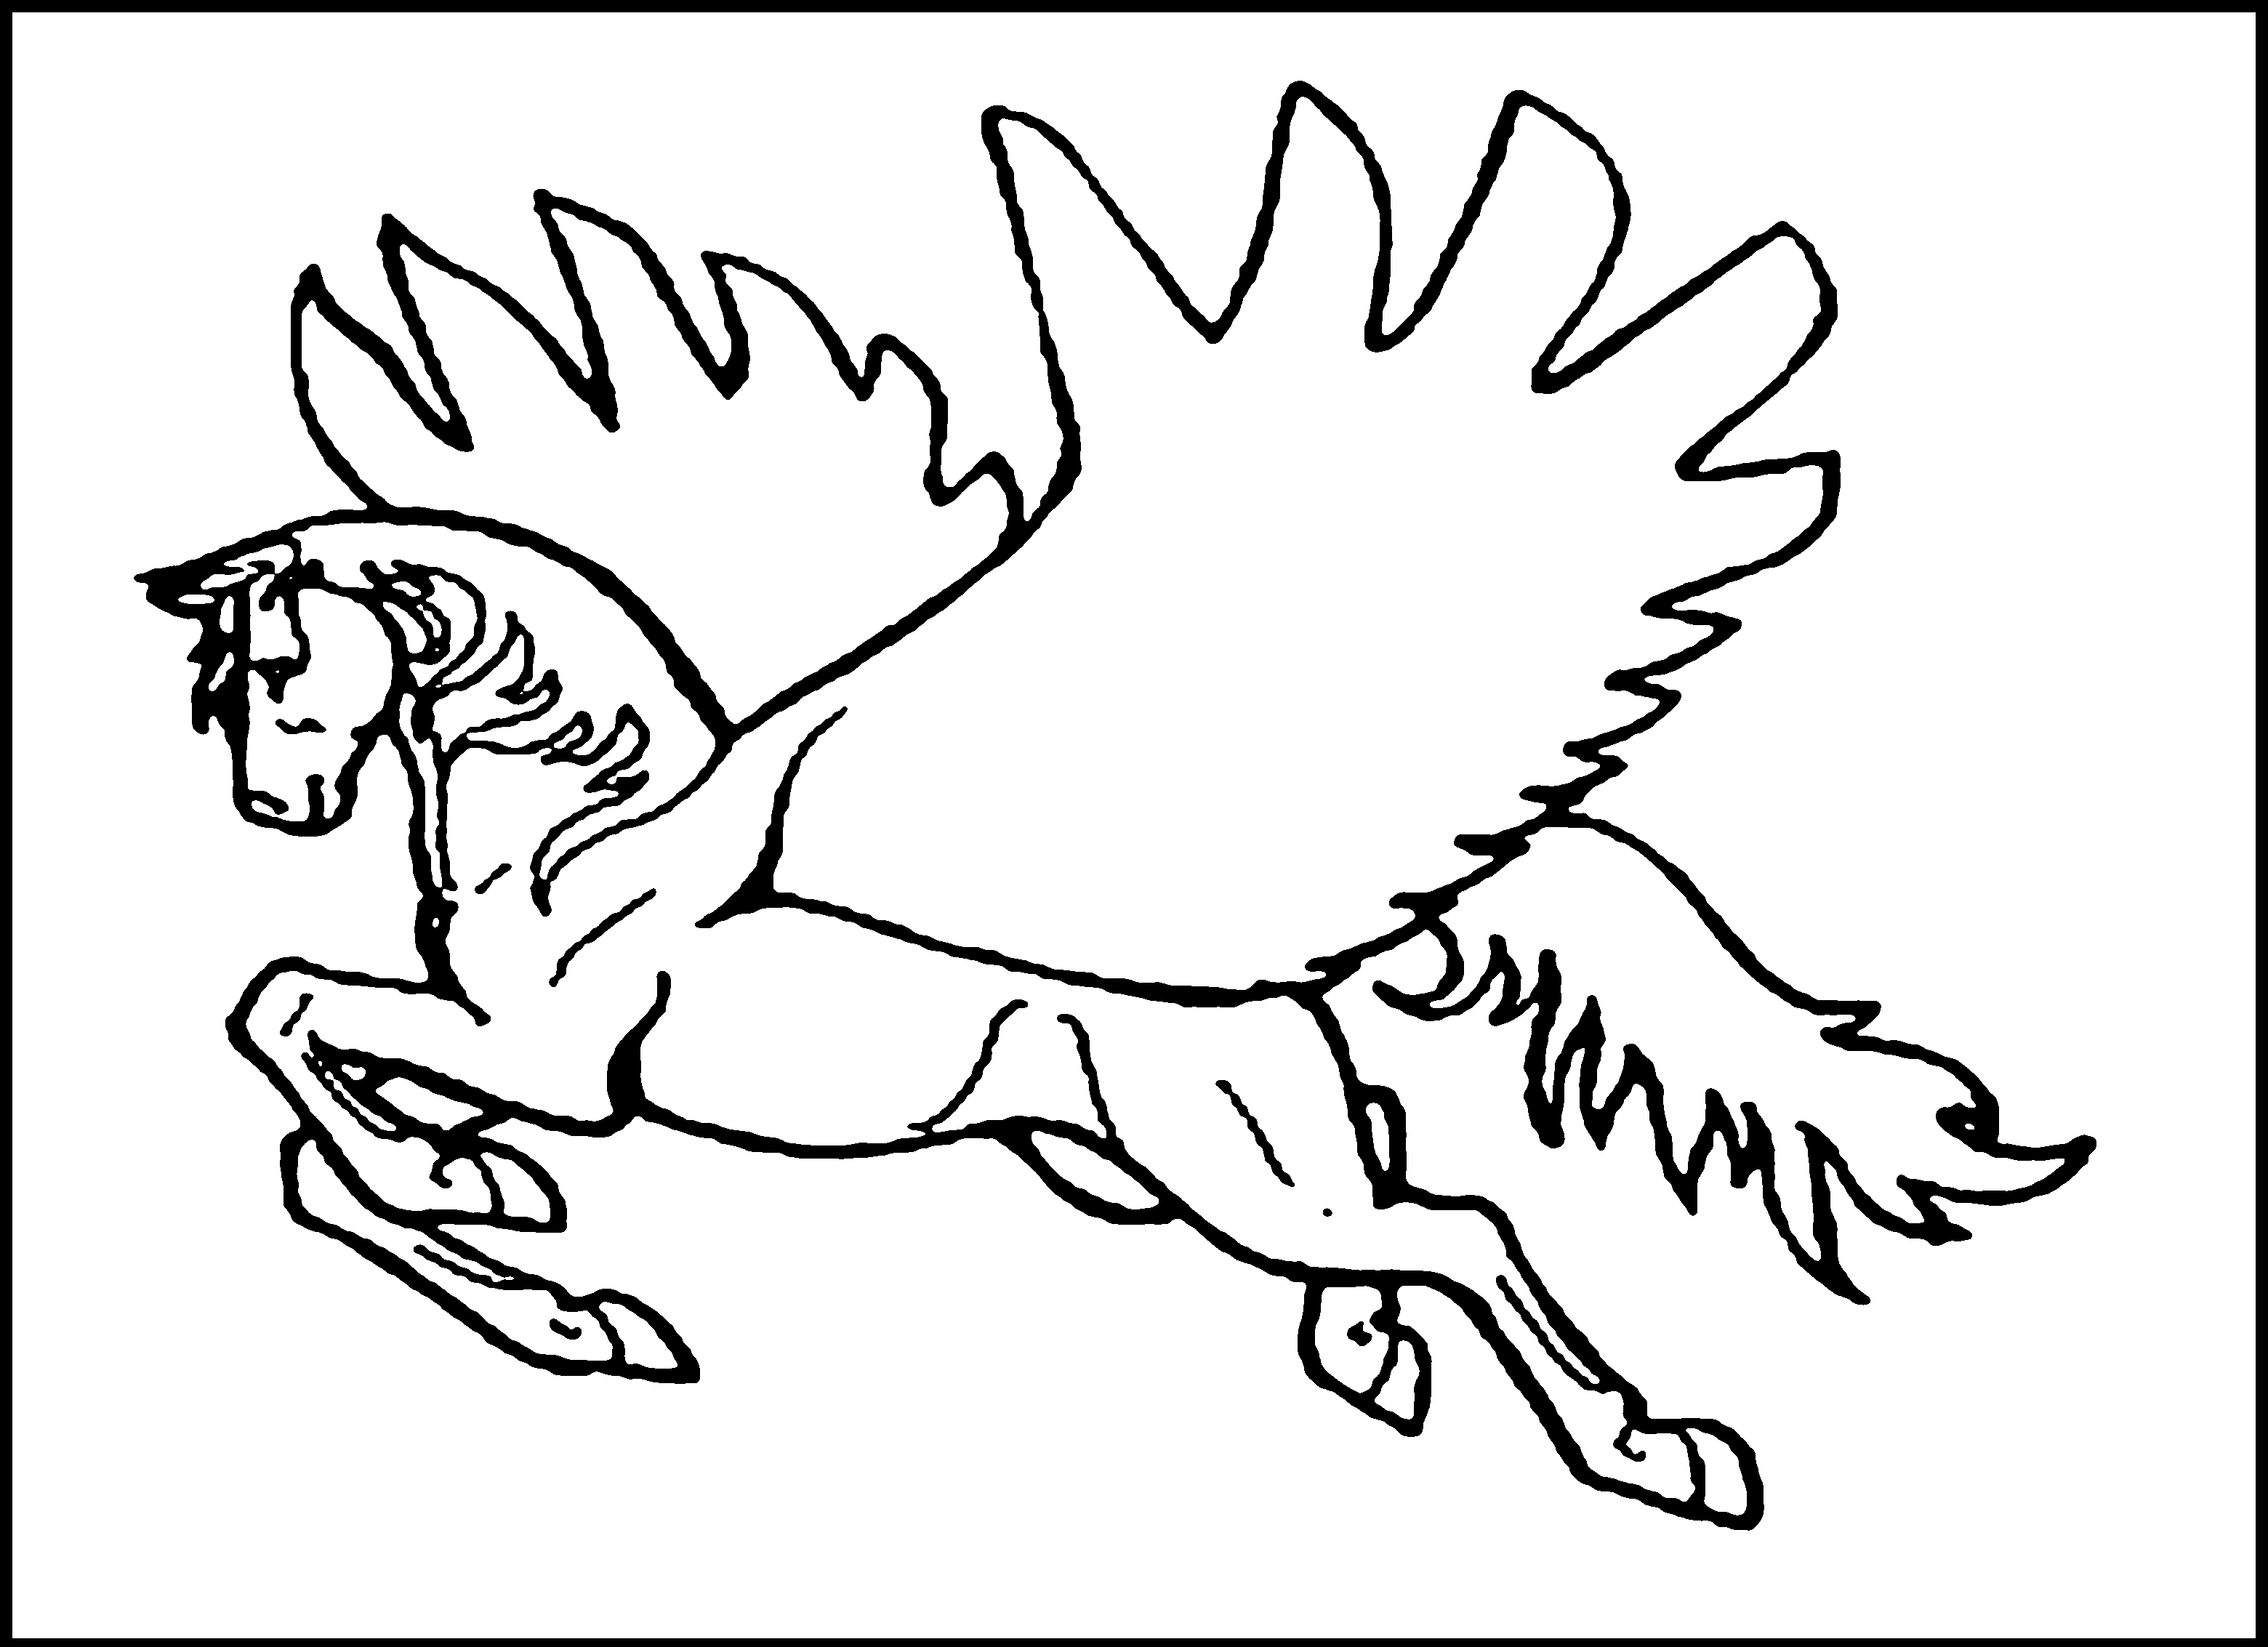 11 pics of pegasus wings coloring pages unicorn with wings - Coloring Pages Unicorn Wings